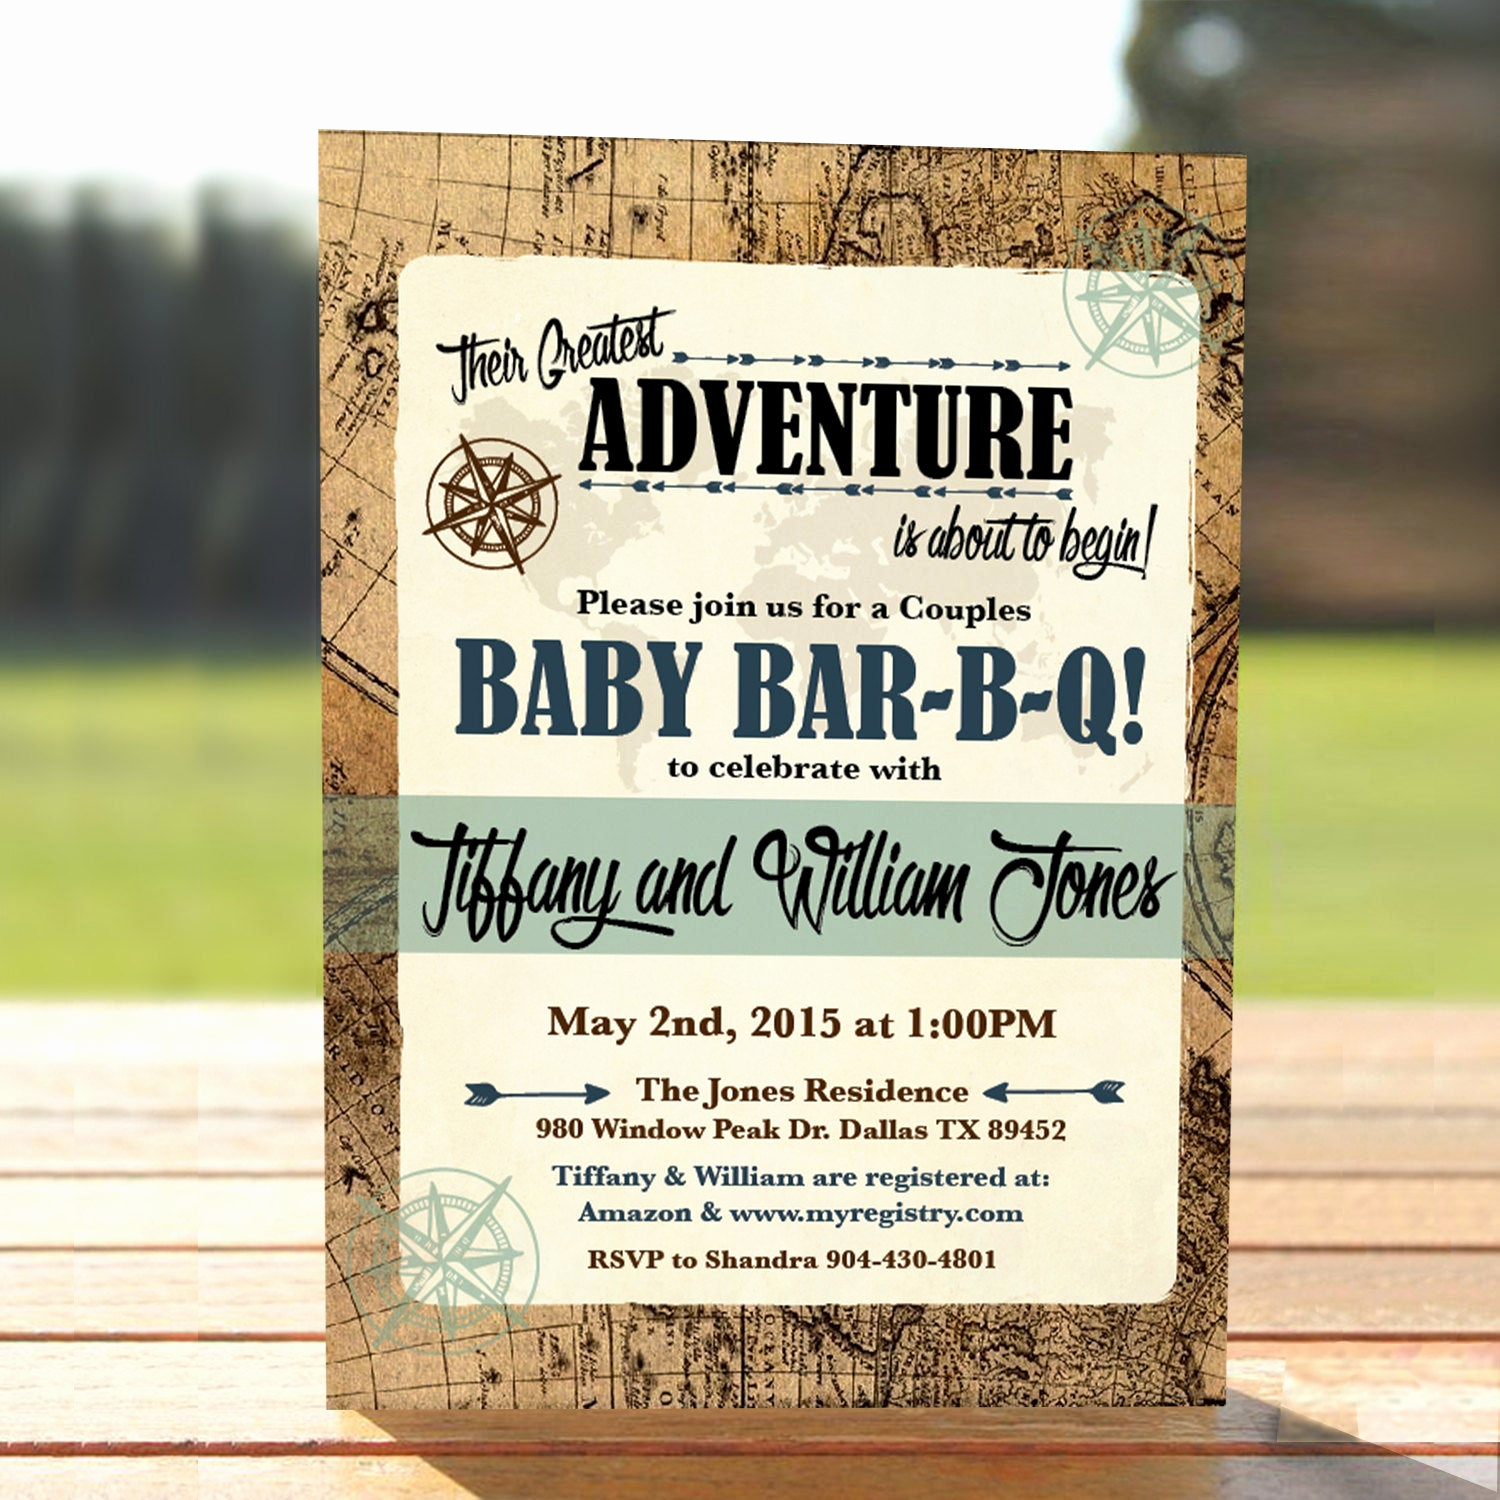 Couple Baby Shower Invitation Lovely Vintage Map Couples Baby Shower Invitation Adventure Baby